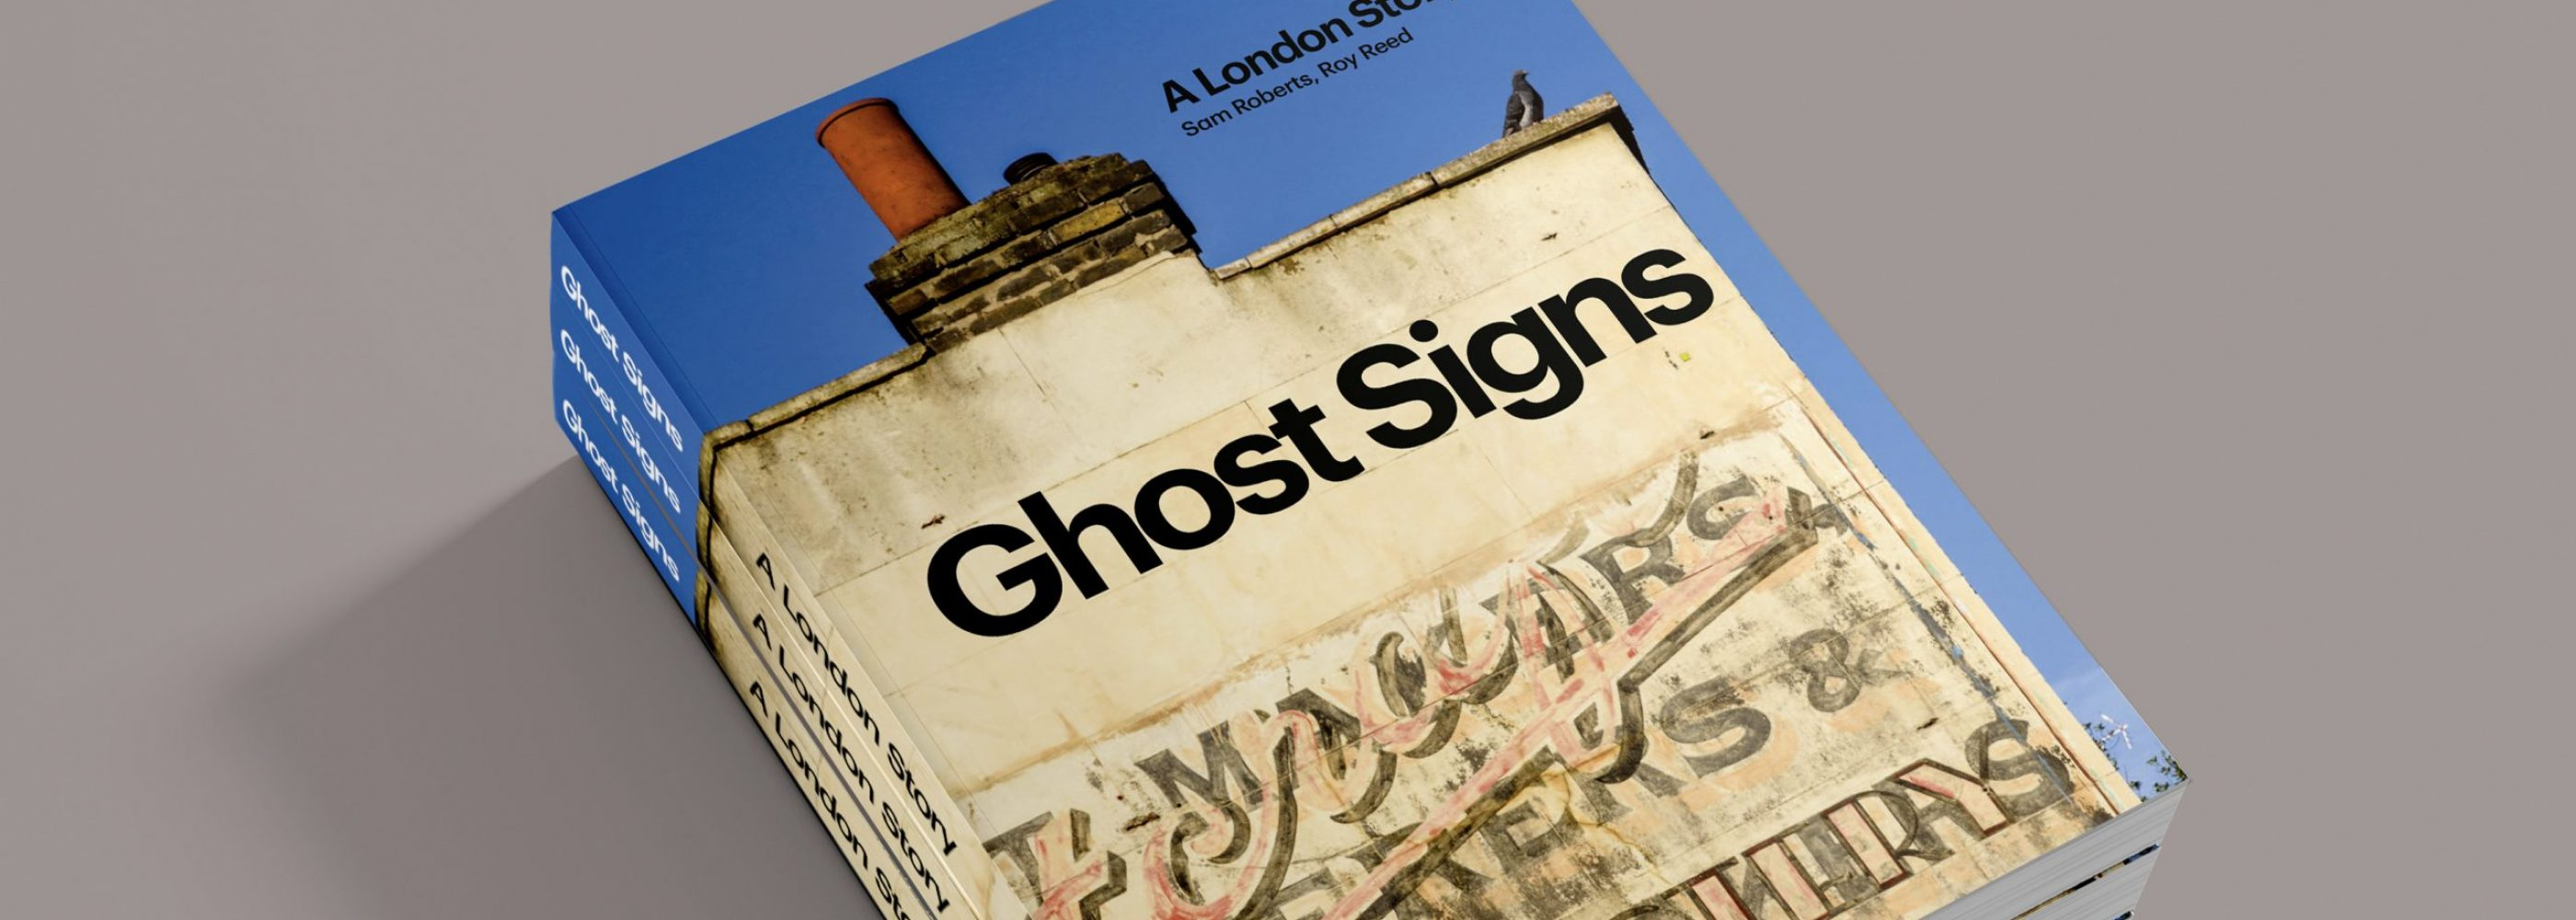 Ghost-Signs-A-London-Story-Cover-banner-1